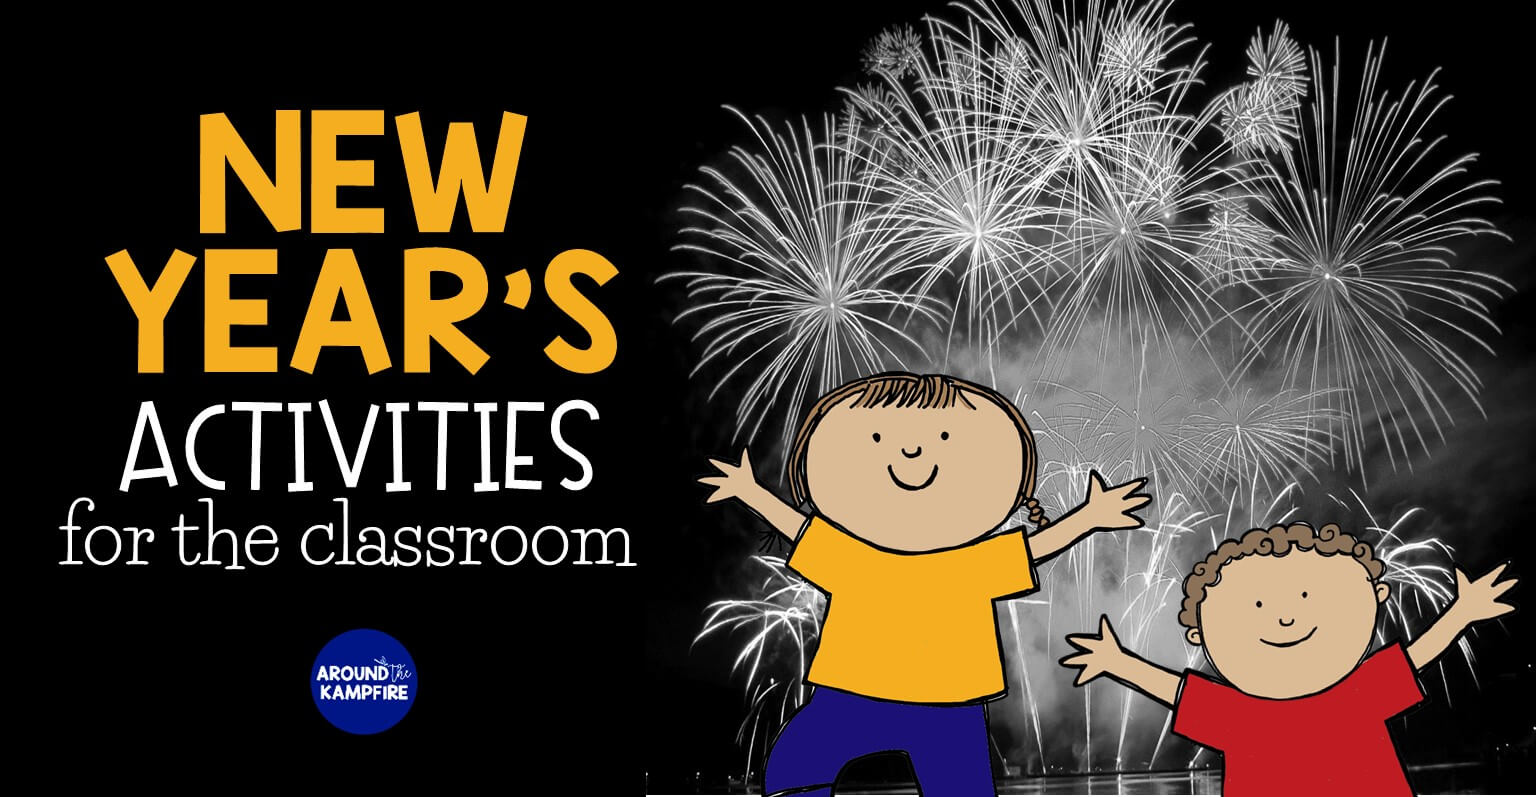 hight resolution of 5 Fun New Year's Activities for the Classroom - Around the Kampfire